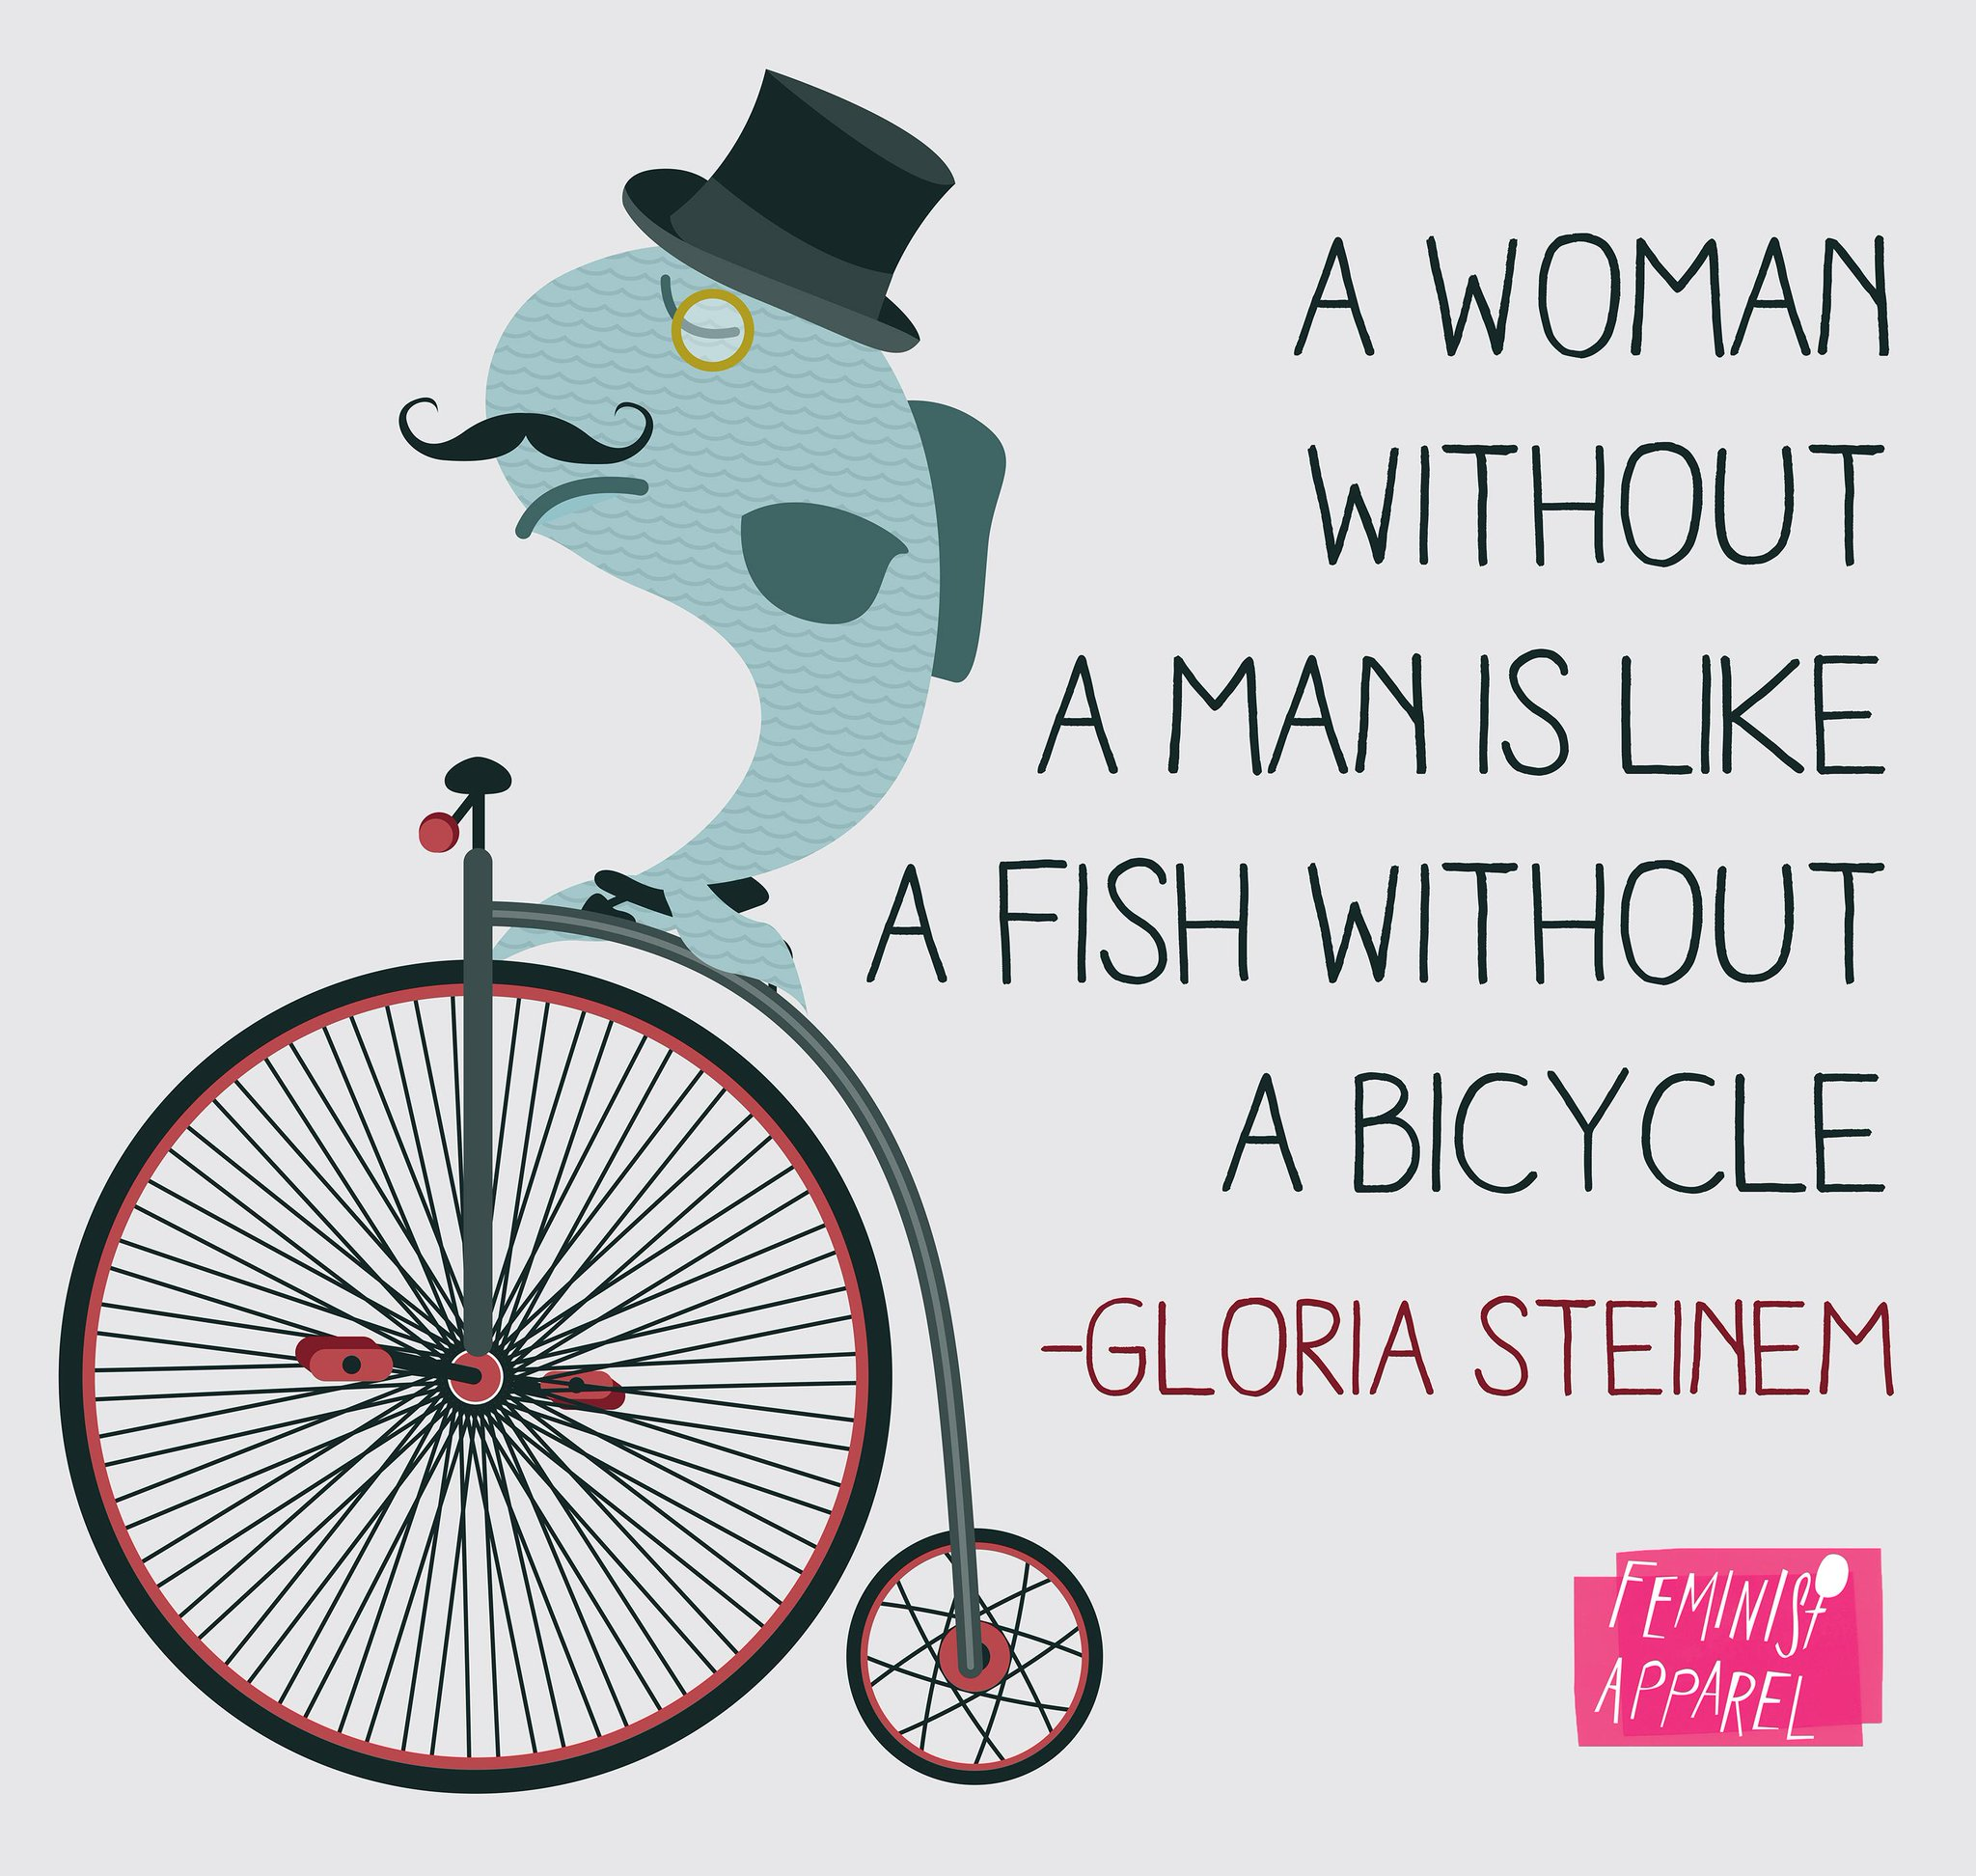 """""""A woman without a man is like a fish without a bicycle."""" Preach, Gloria Steinem! (via @FeministApparel) http://t.co/OywDRmpAYX"""